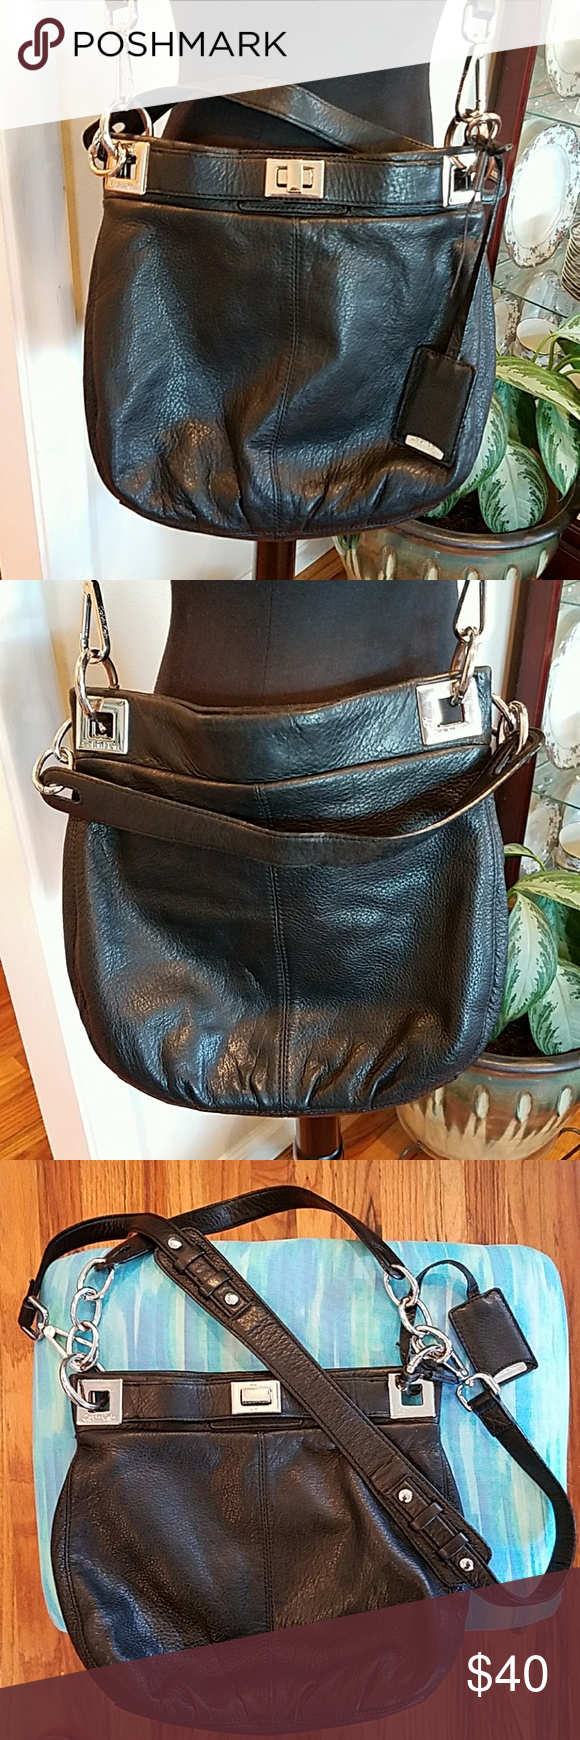 """Calvin Klein Black Leather Crossbody Bag This is such a versatile nice leather crossbody bag! It has a magnetic closure and 2 open flaps and 1 zippered pocket on the inside.  The crossbody strap is removable and is not adjustable. The strap drop for the handle is 7.5"""" and the length of the crossbody strap is 18."""" Such cute detail! EUC! See the fourth picture for some scratches and another few marks on the silver hardware center button, hard to see unless really close up. Calvin Klein Bags…"""